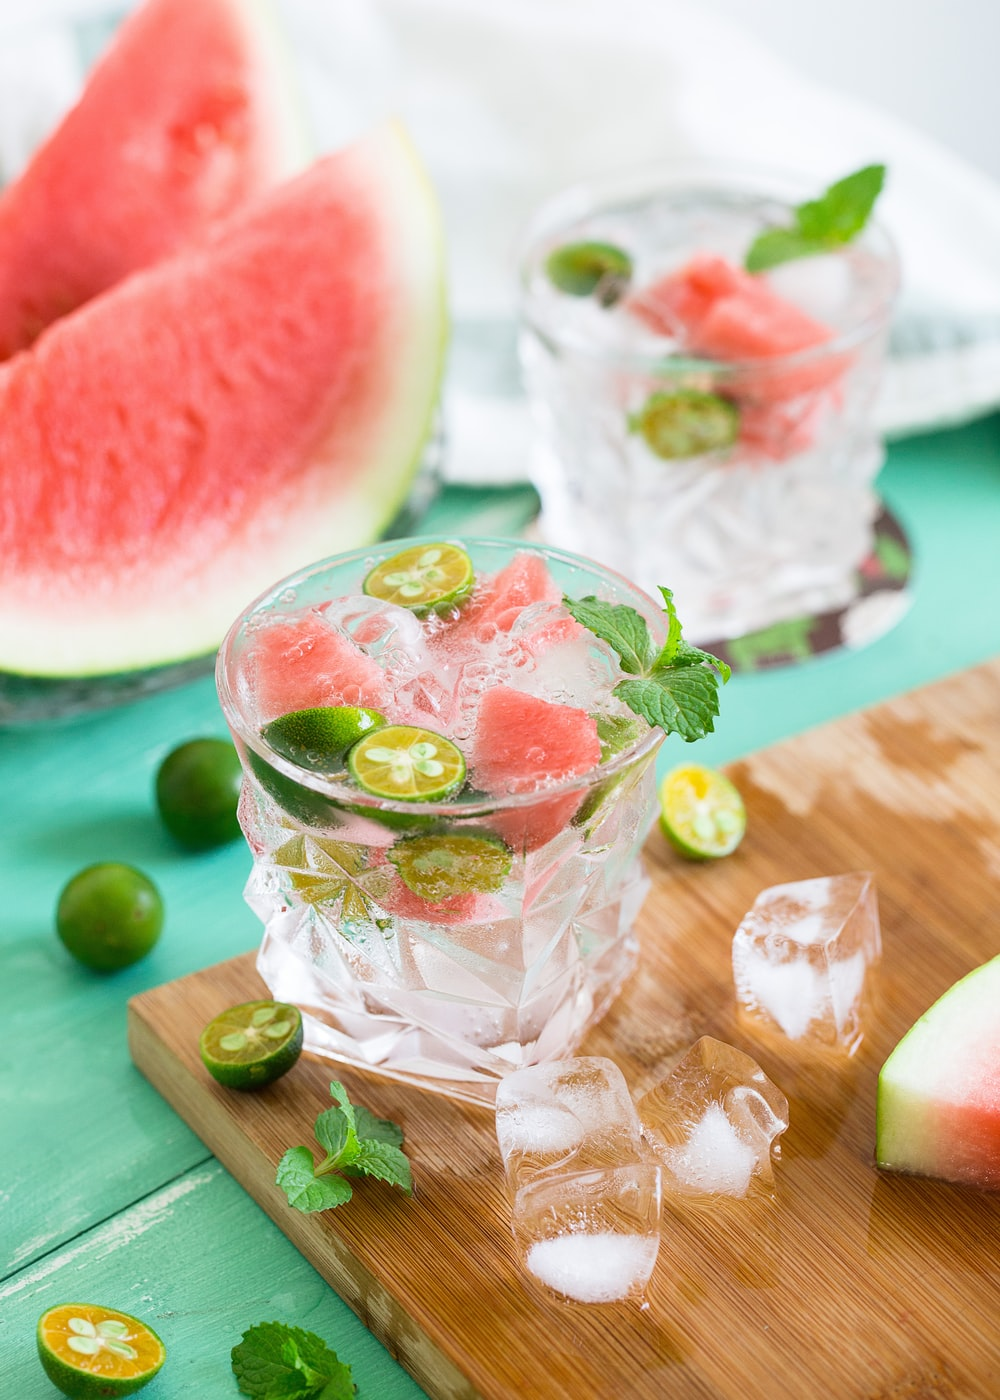 sliced watermelon with lemon on shot glass